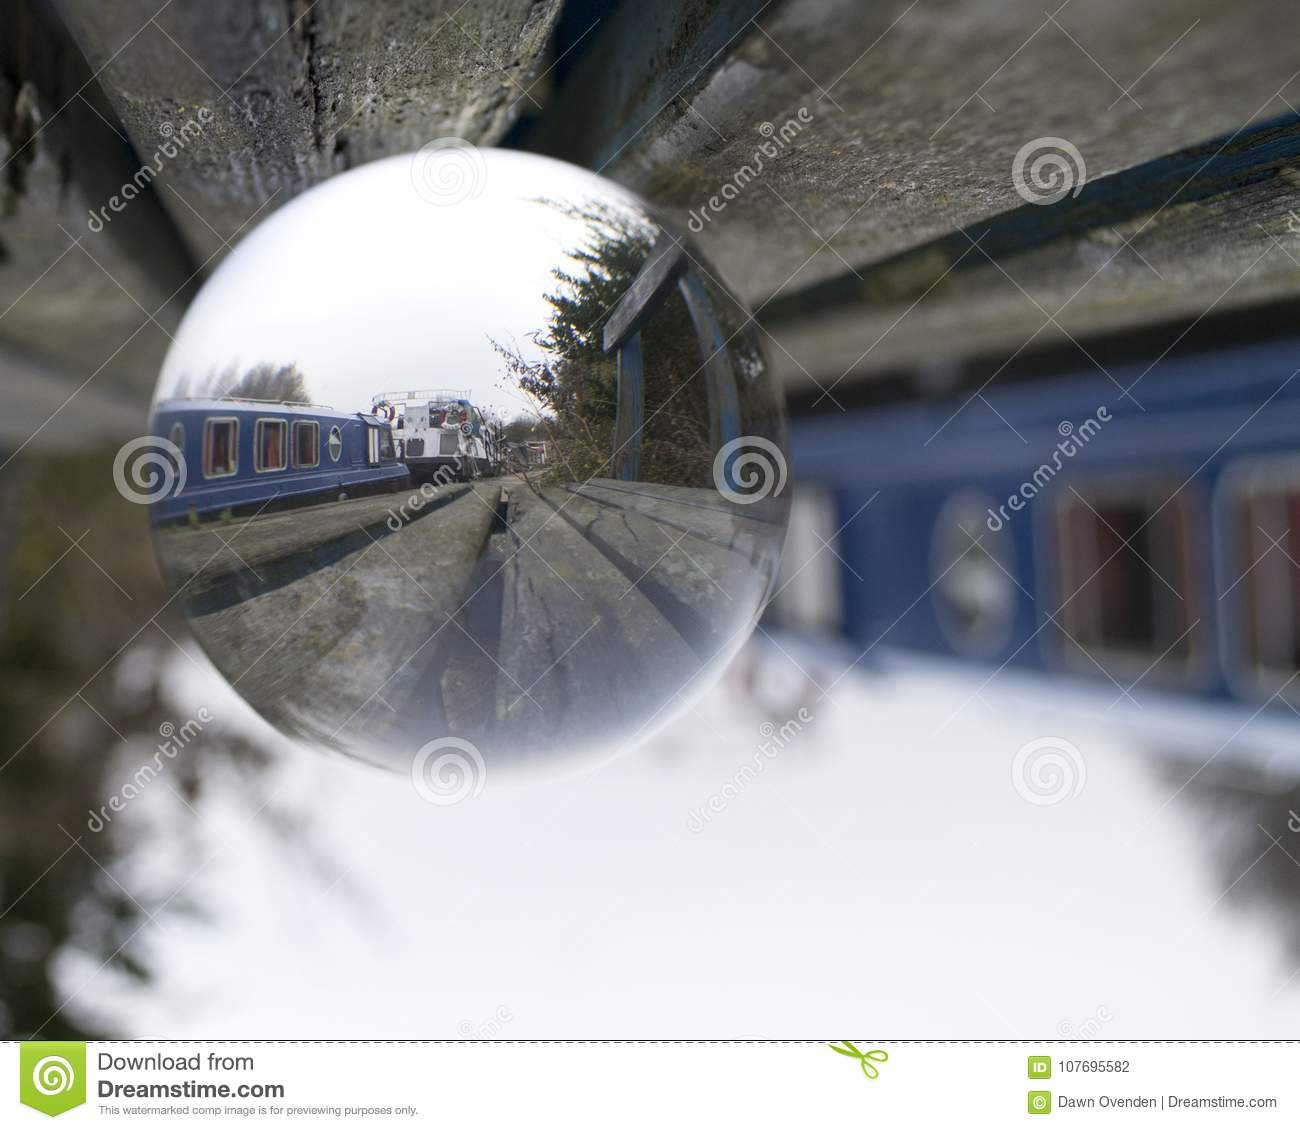 Image of boats moored along canal refracted through glass ball